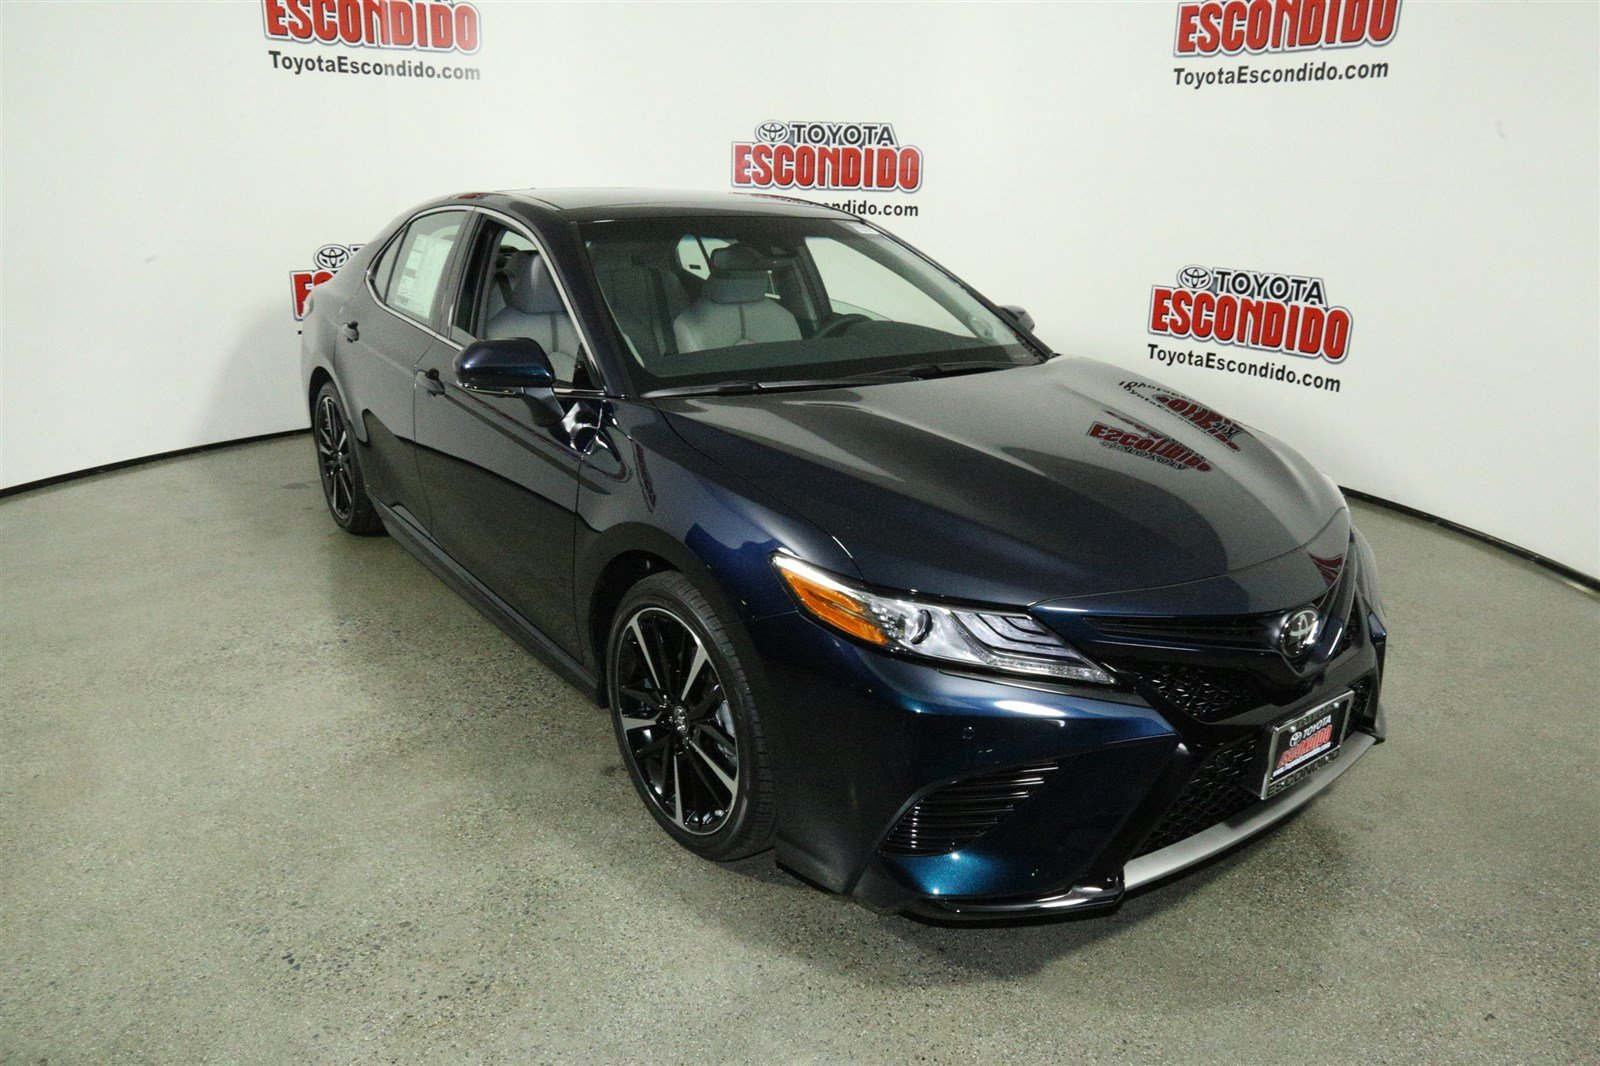 new 2018 toyota camry xse v6 4dr car in escondido 1016034 toyota escondido. Black Bedroom Furniture Sets. Home Design Ideas